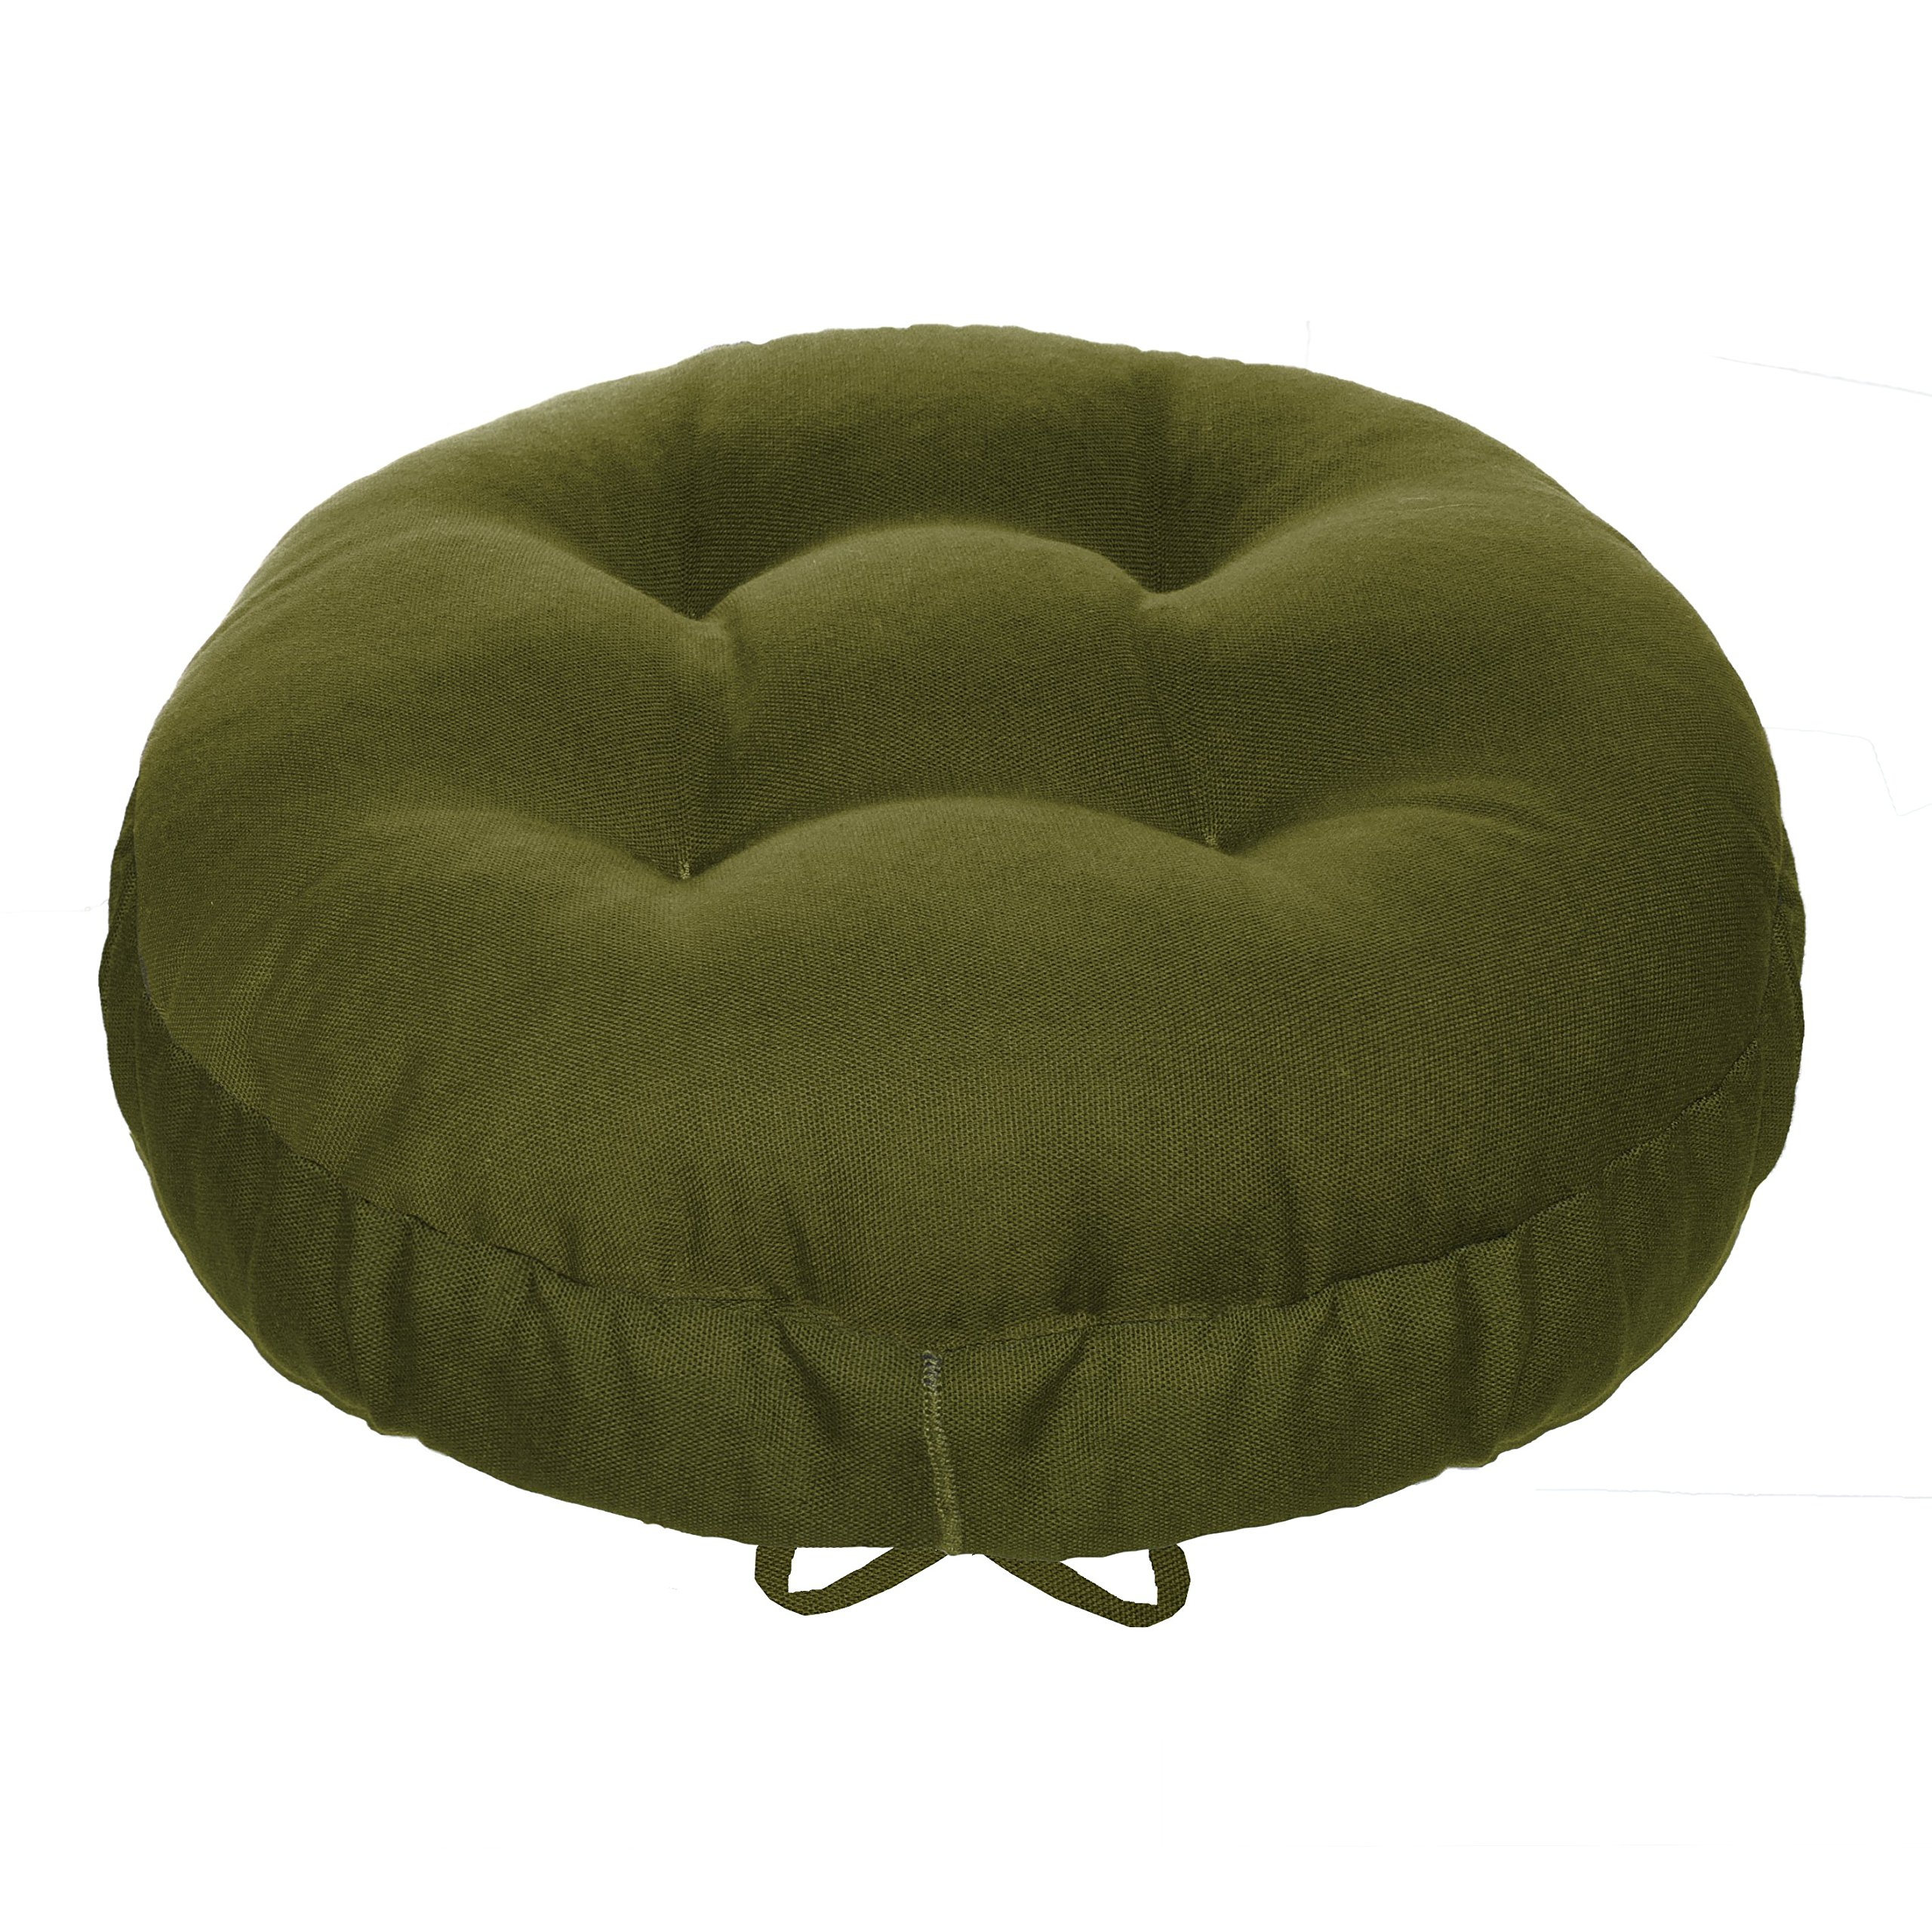 13'' Round Barstool Cushion with Drawstring Yoke - Solid Color Olive Green Cotton Duck Canvas - Latex Foam Fill - Adjustable Bar Stool Pad